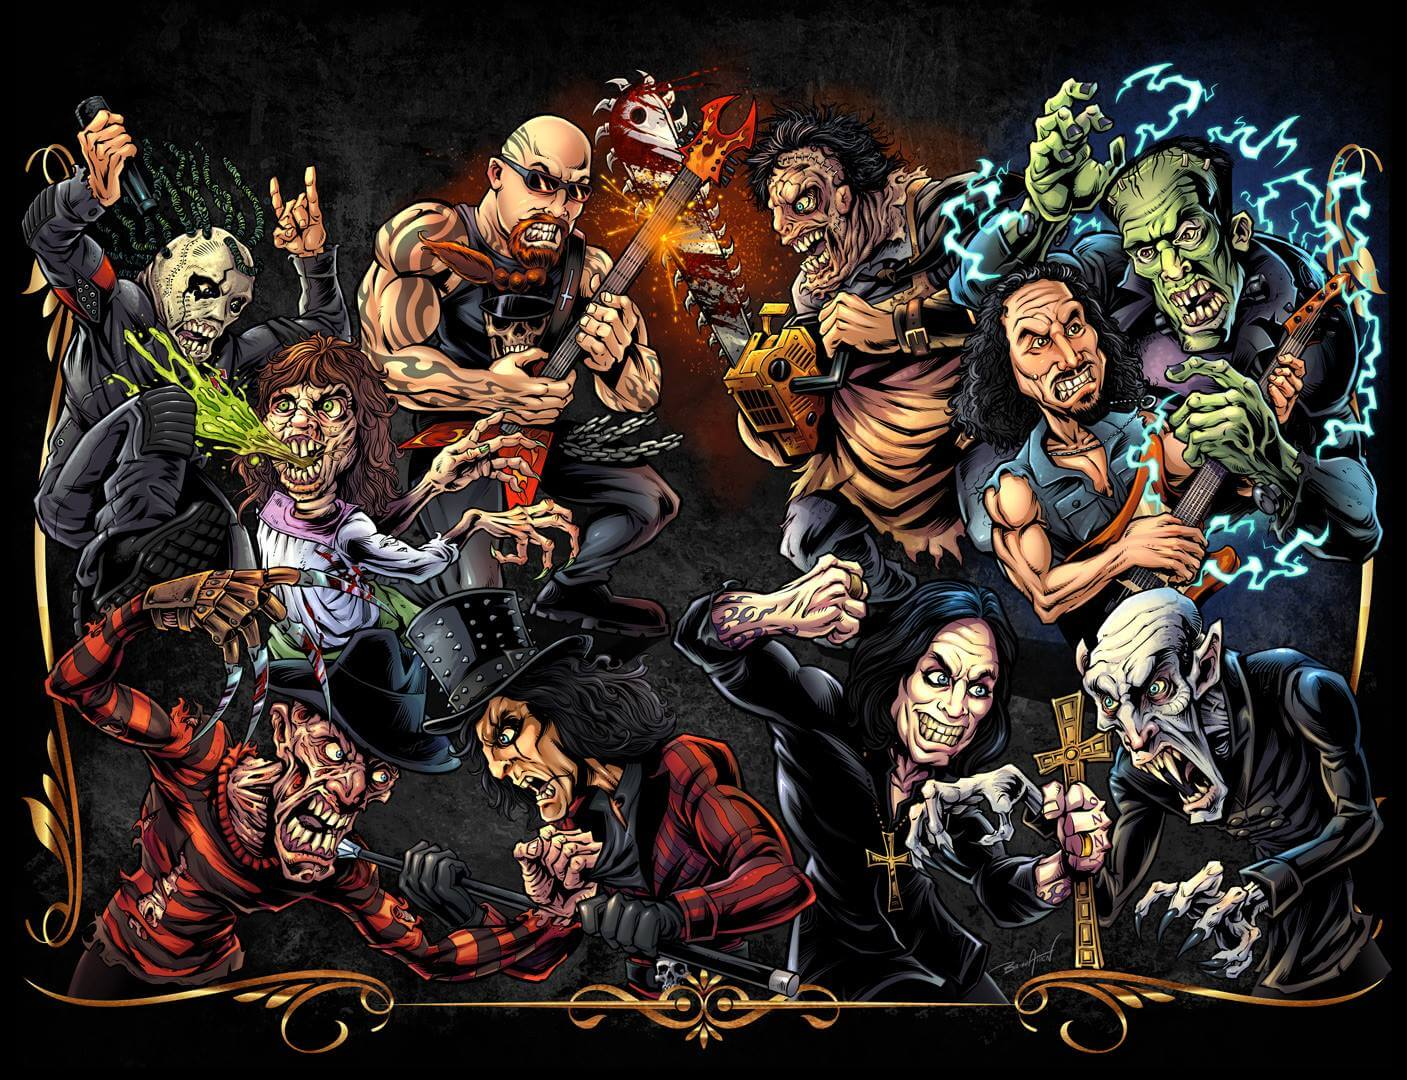 history of metal and horror 1 - Get a New Look at The History of Metal and Horror